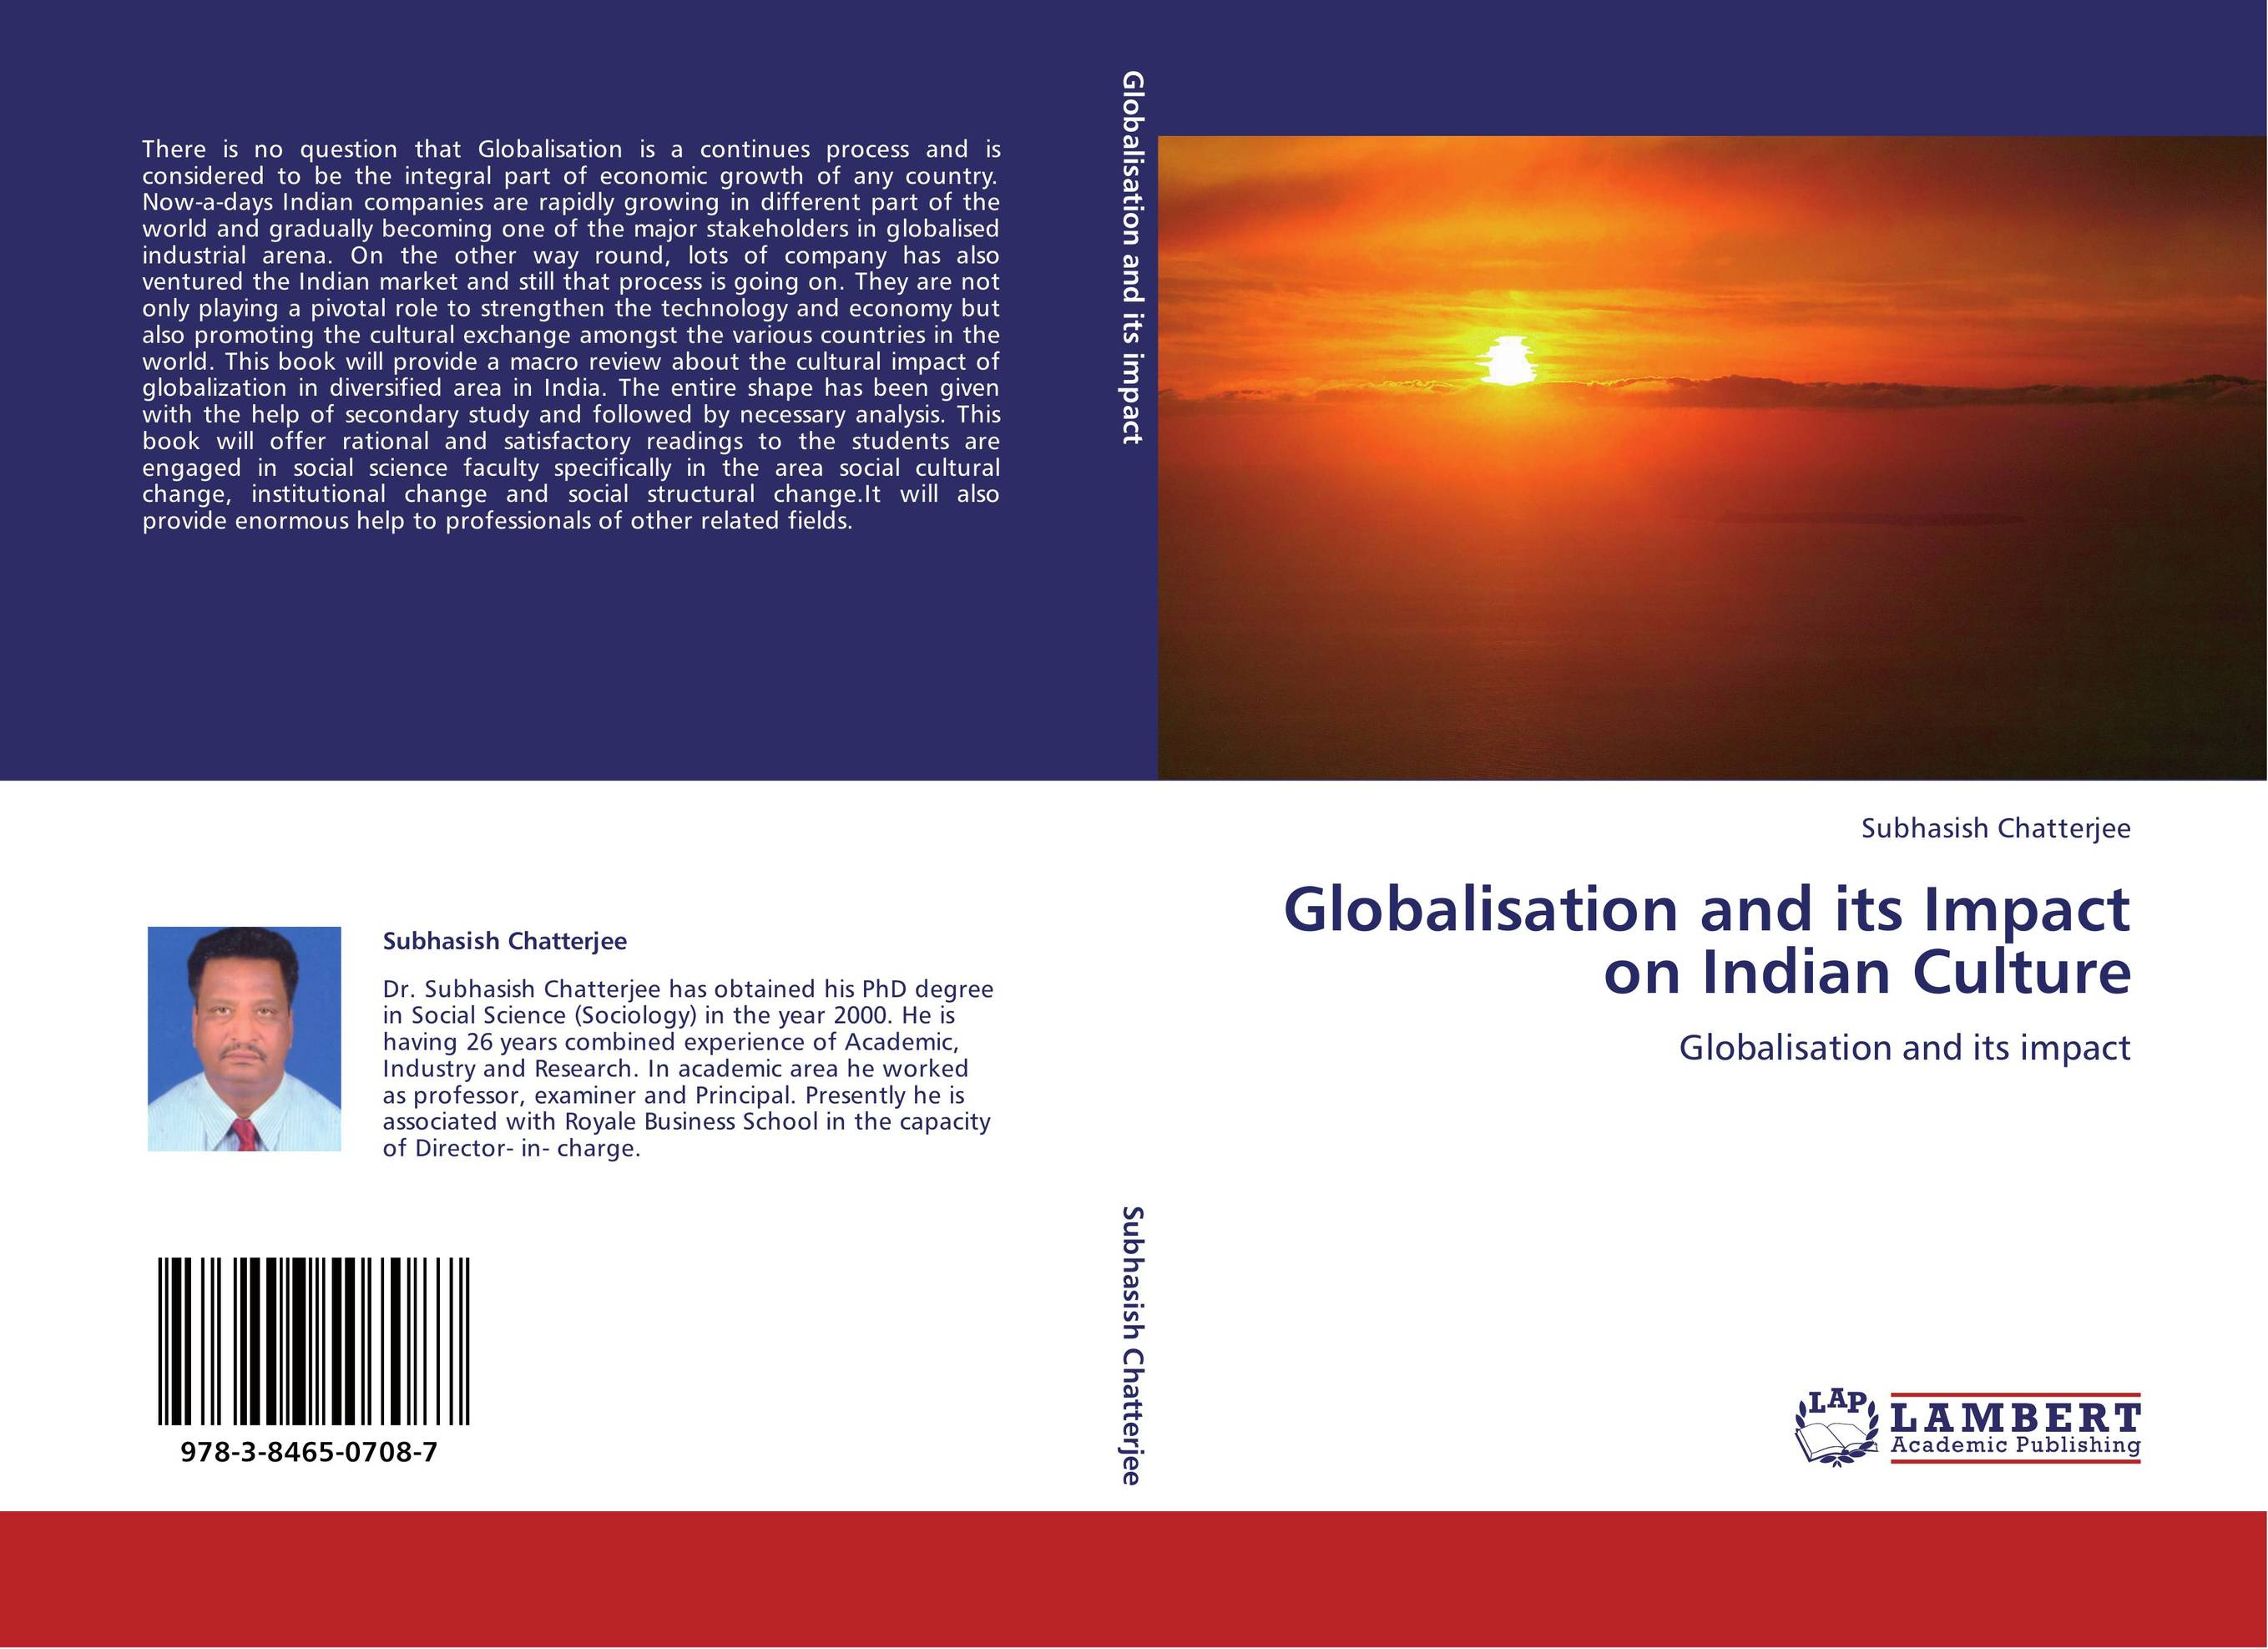 impact on globalisation Globalisation essay: the positive and negative impacts of globalisation on the developing world what is globalisation free 3000 words globalisation essay: the concept of globalization is currently a popular but very controversial issue, and has been one of the most widely debated issues since communism collapsed.